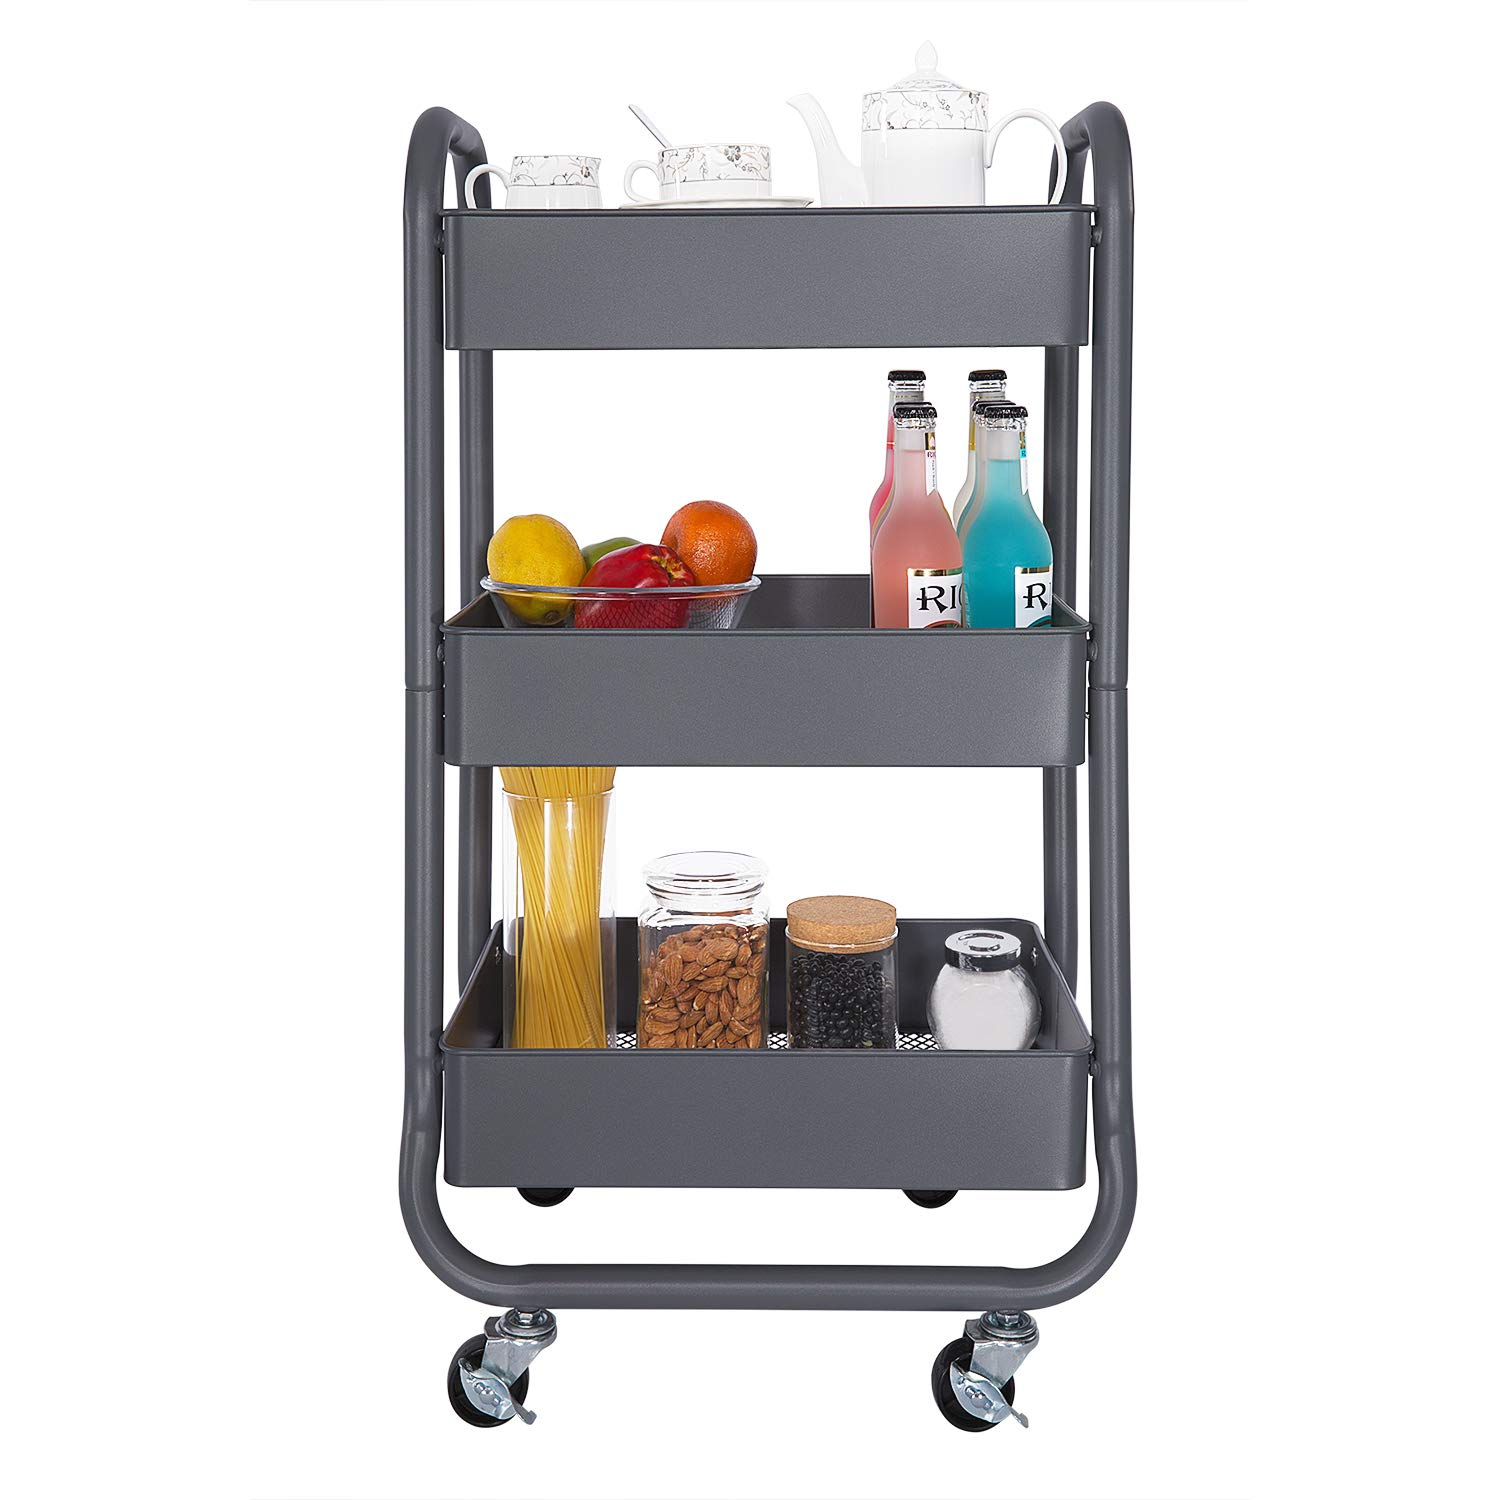 DESIGNA Metal Rolling Storage Cart 3 Tiers Utility Mobile Organization Cart with Handles Suitable for Office Home Kitchen or Outdoor, Gray by DESIGNA (Image #1)